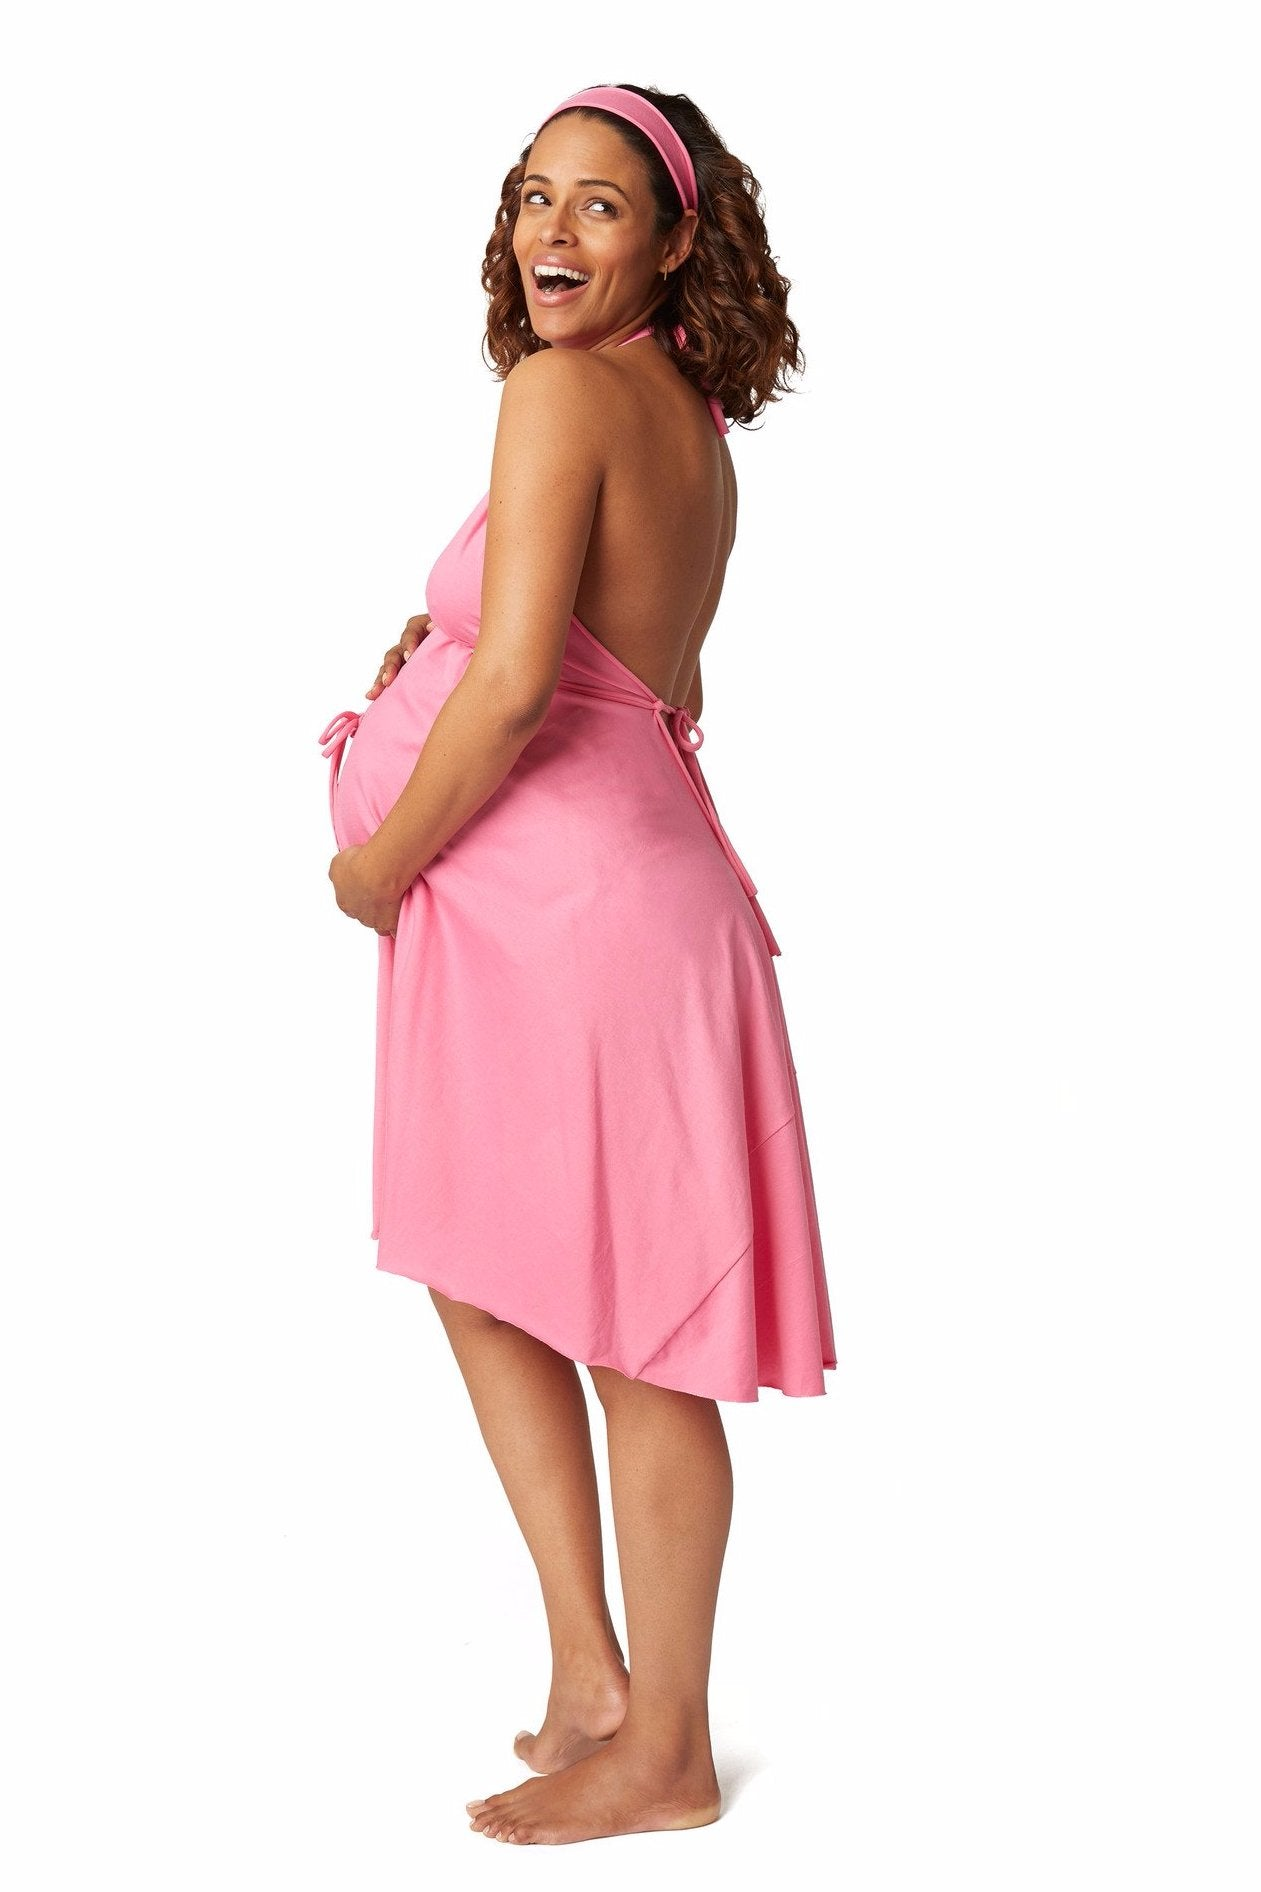 Labor and Delivery Gowns by Pretty Pushers